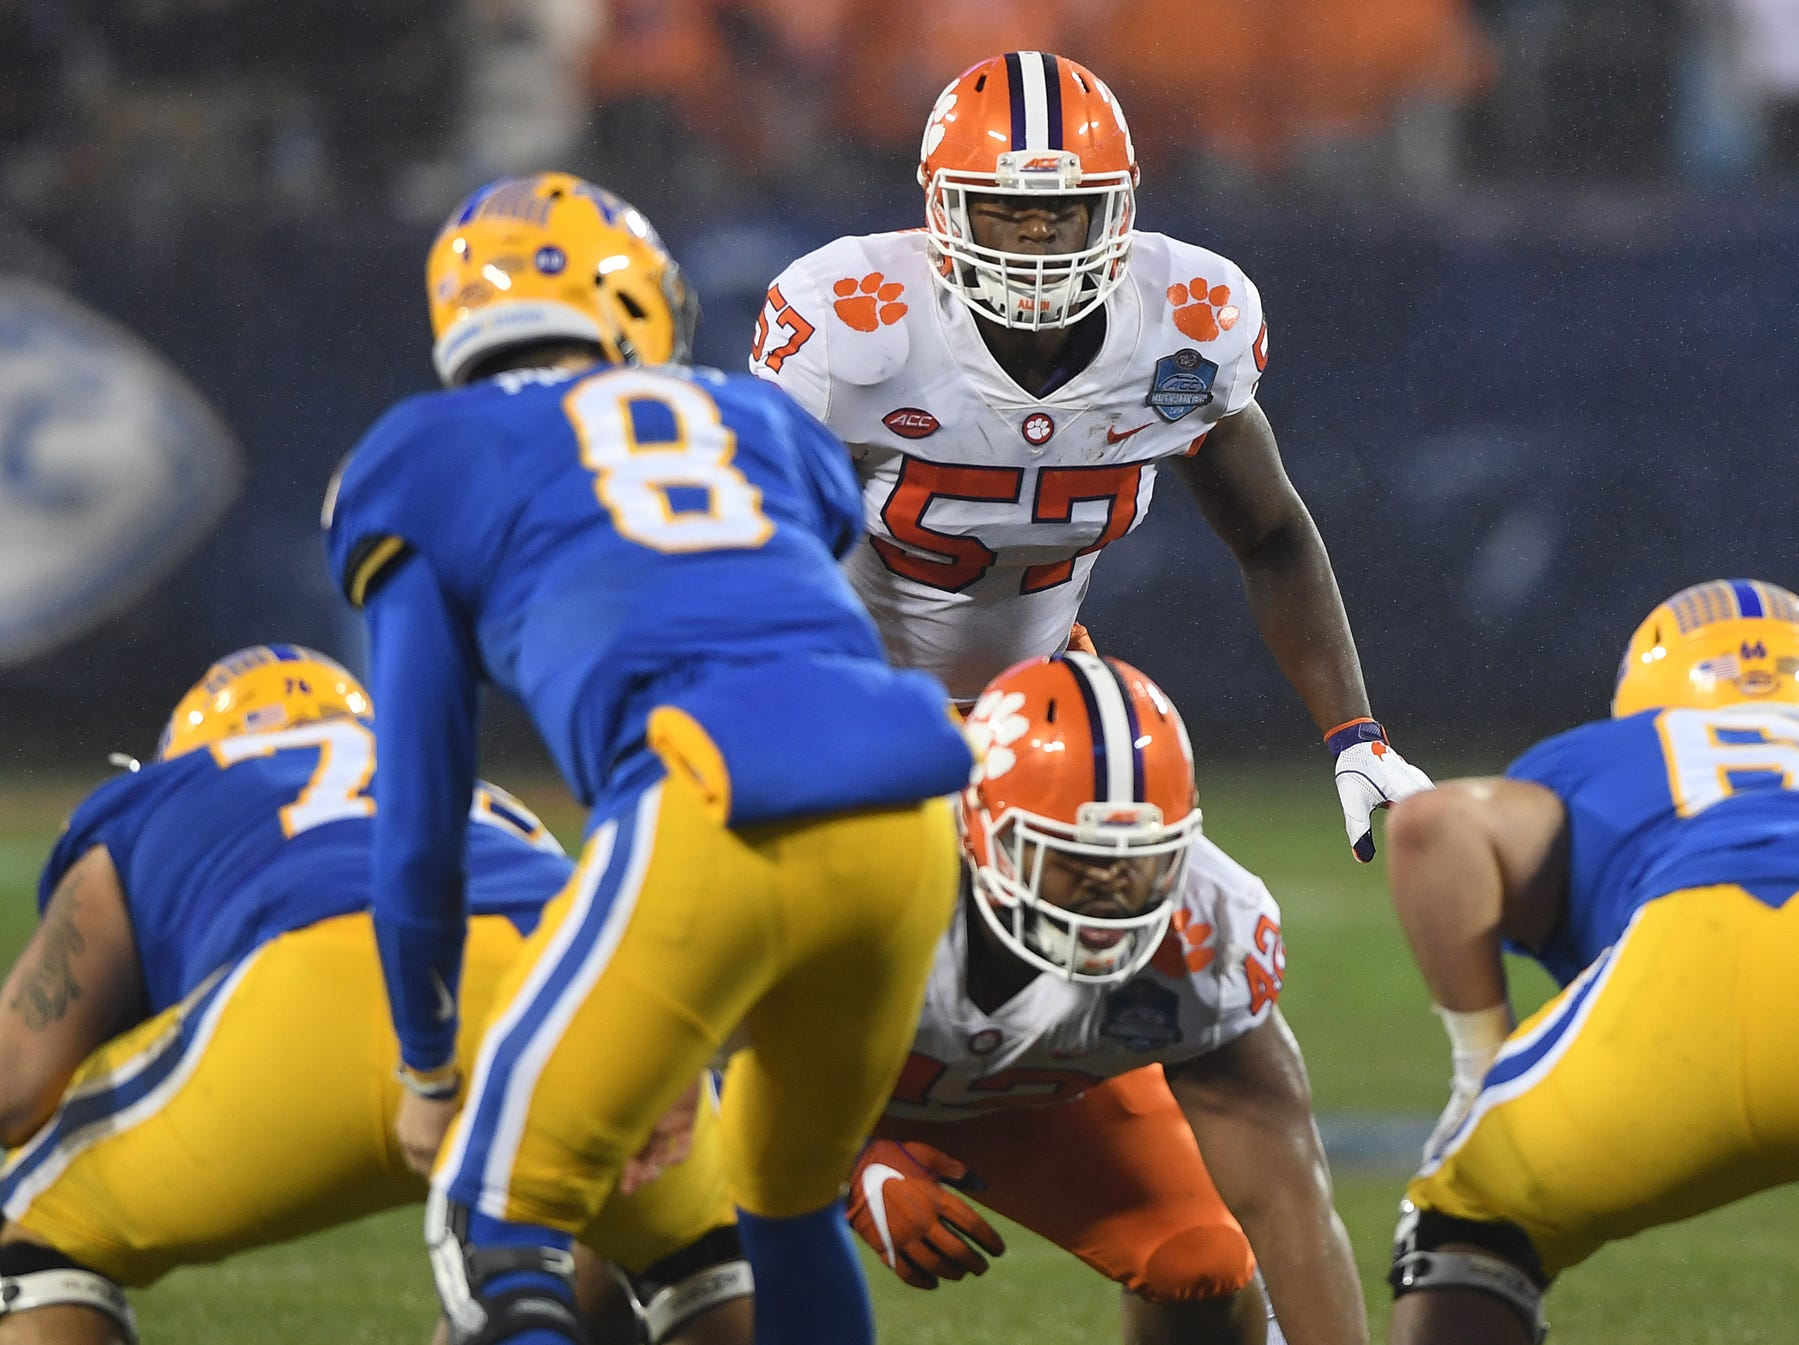 Clemson linebacker Tre Lamar (57) plays against Pittsburgh during the 1st quarter of the Dr. Pepper ACC Championship at Bank of America Stadium in Charlotte, N.C. Saturday, December 1, 2018.